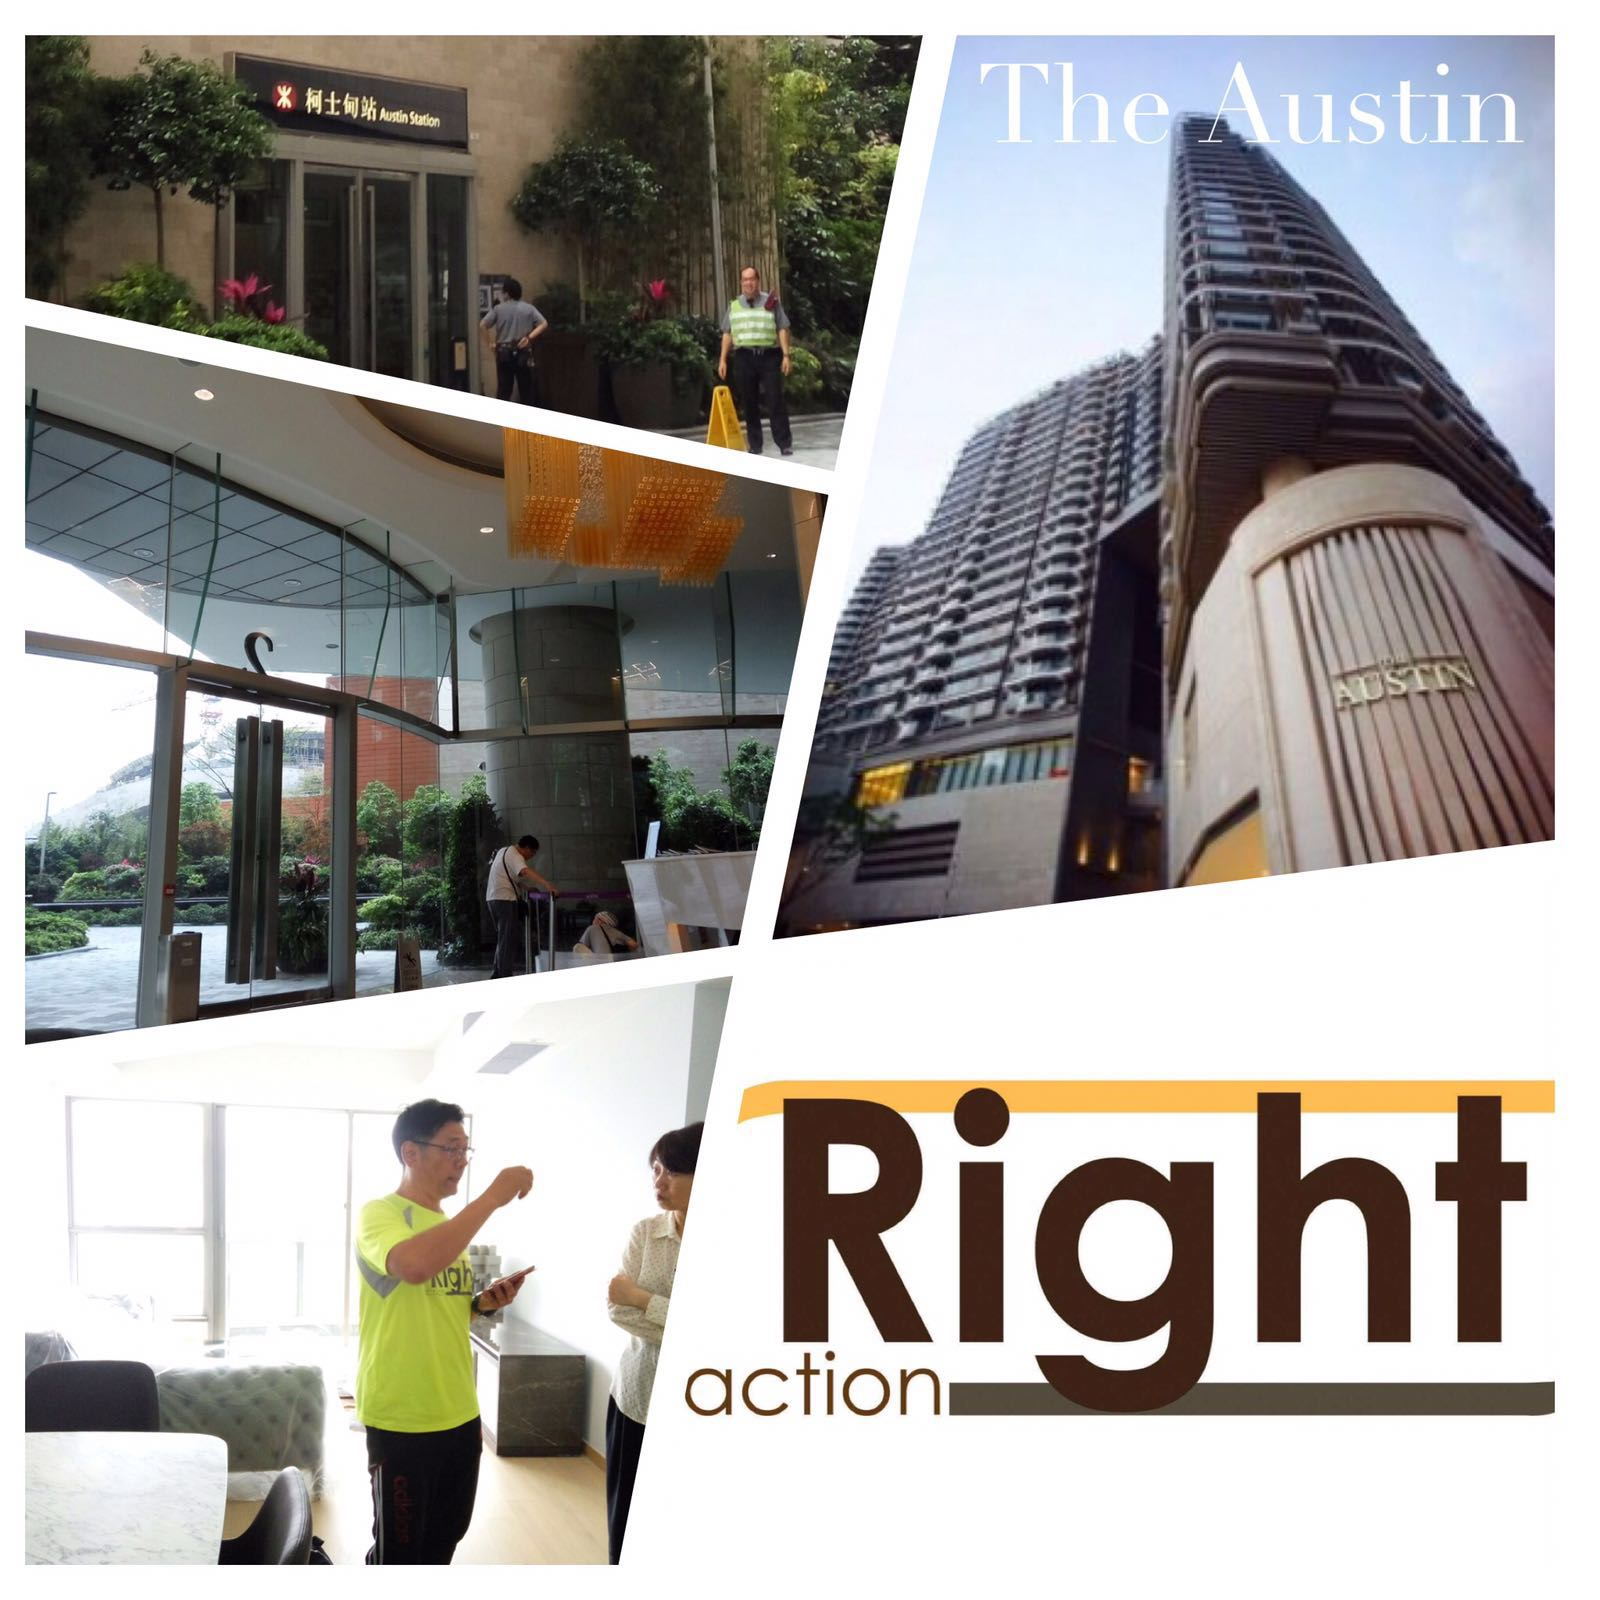 right action_the austin